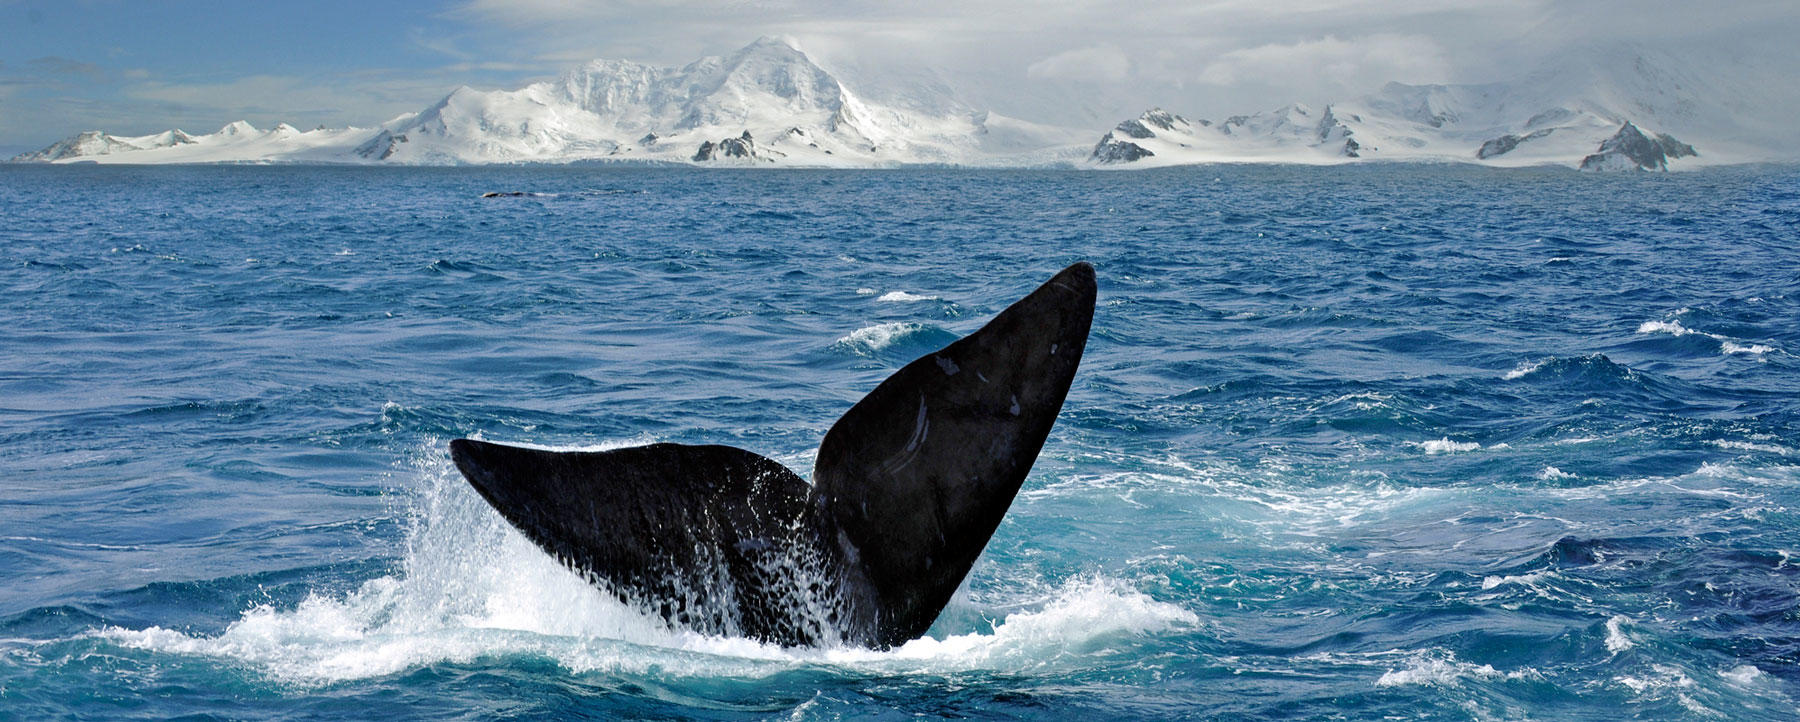 South Right Whale breaking the surface of the Weddell Sea in the Antarctic Ocean